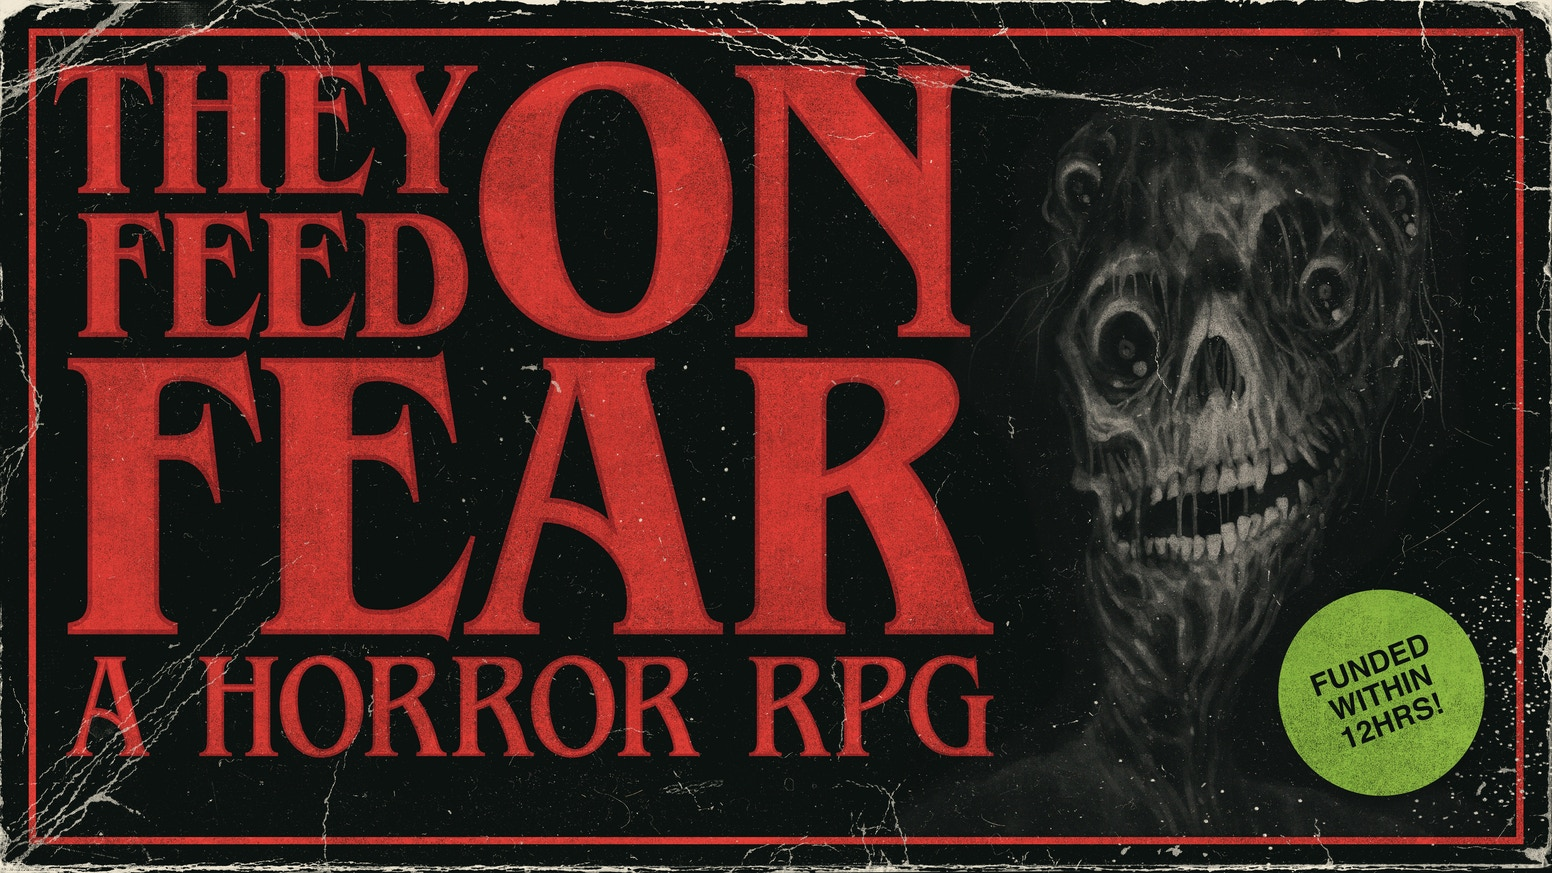 A Horror RPG where YOU play the HORROR! [Zine Quest 2/2020].